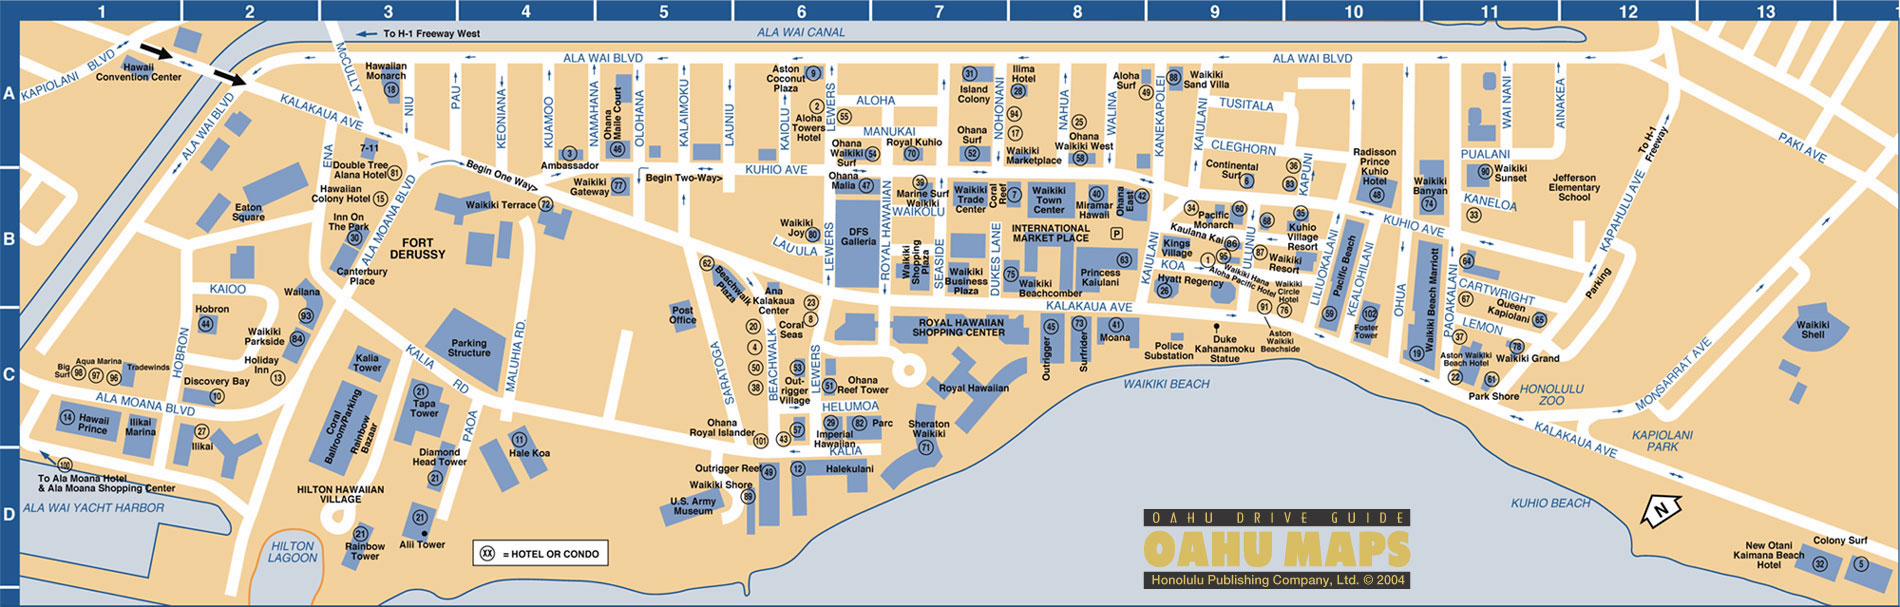 Waikiki Hotels Map Waikiki us Waikiki Hotels